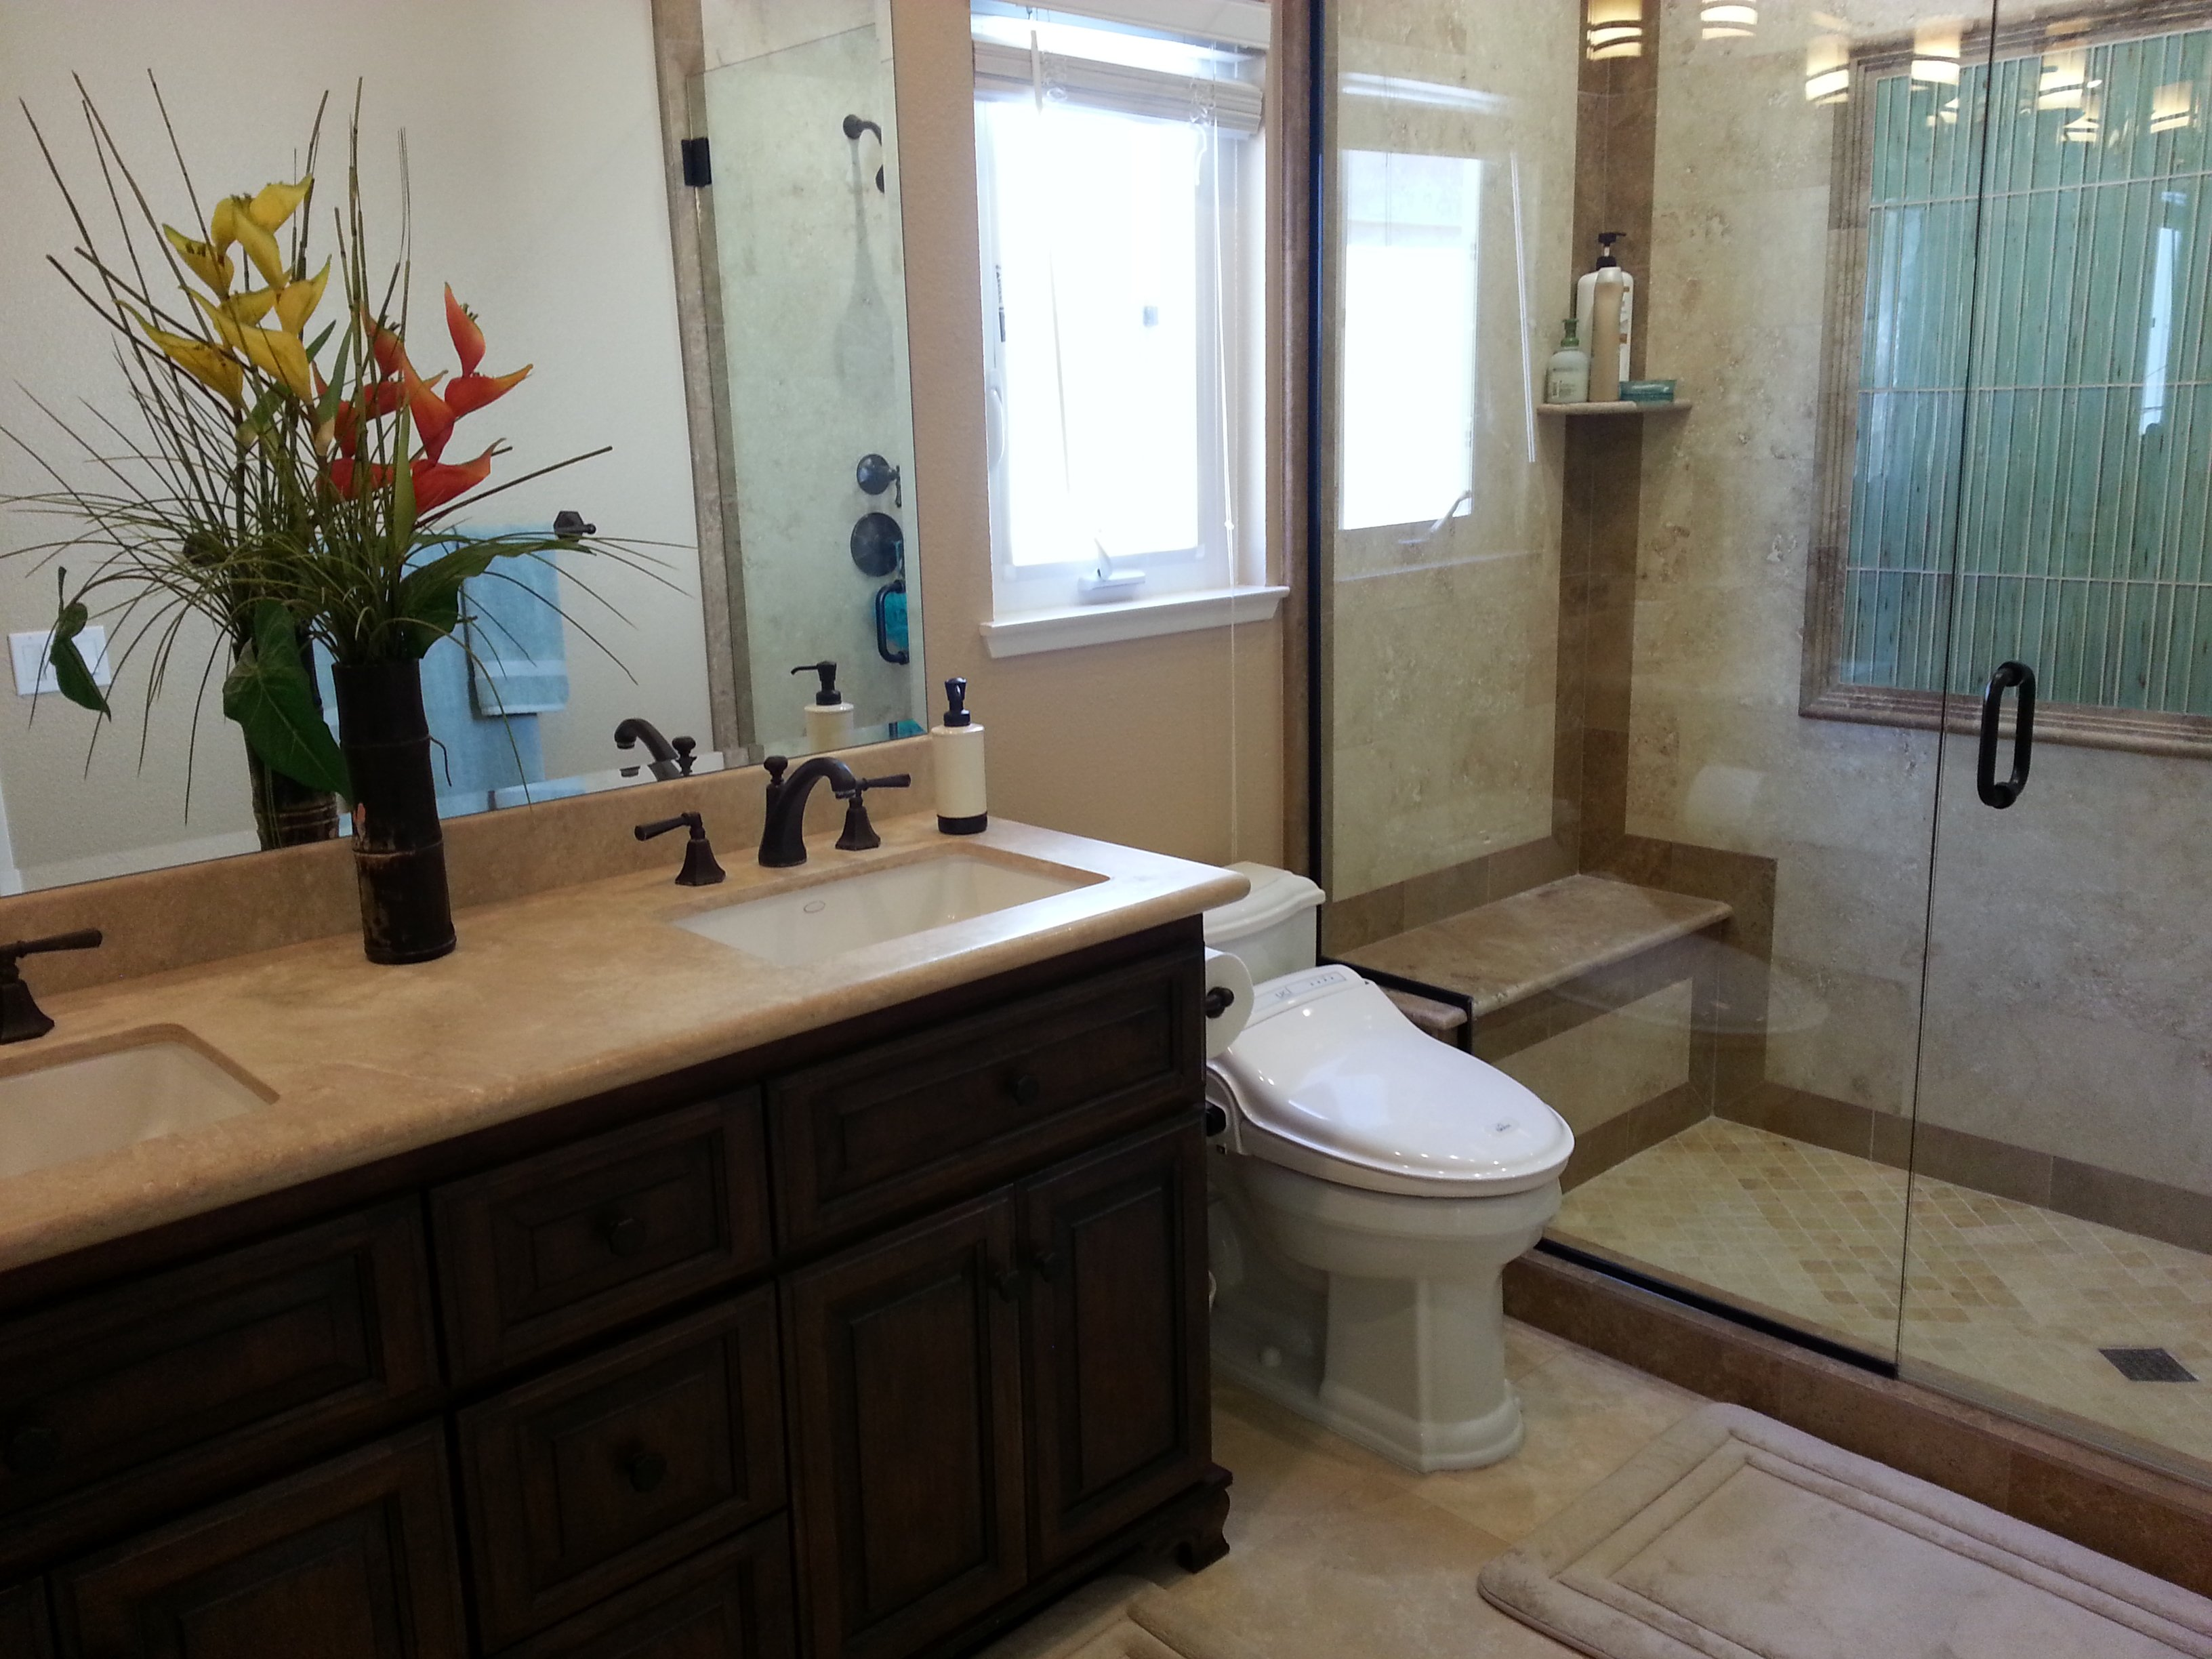 Bathroom with countertop and mirror